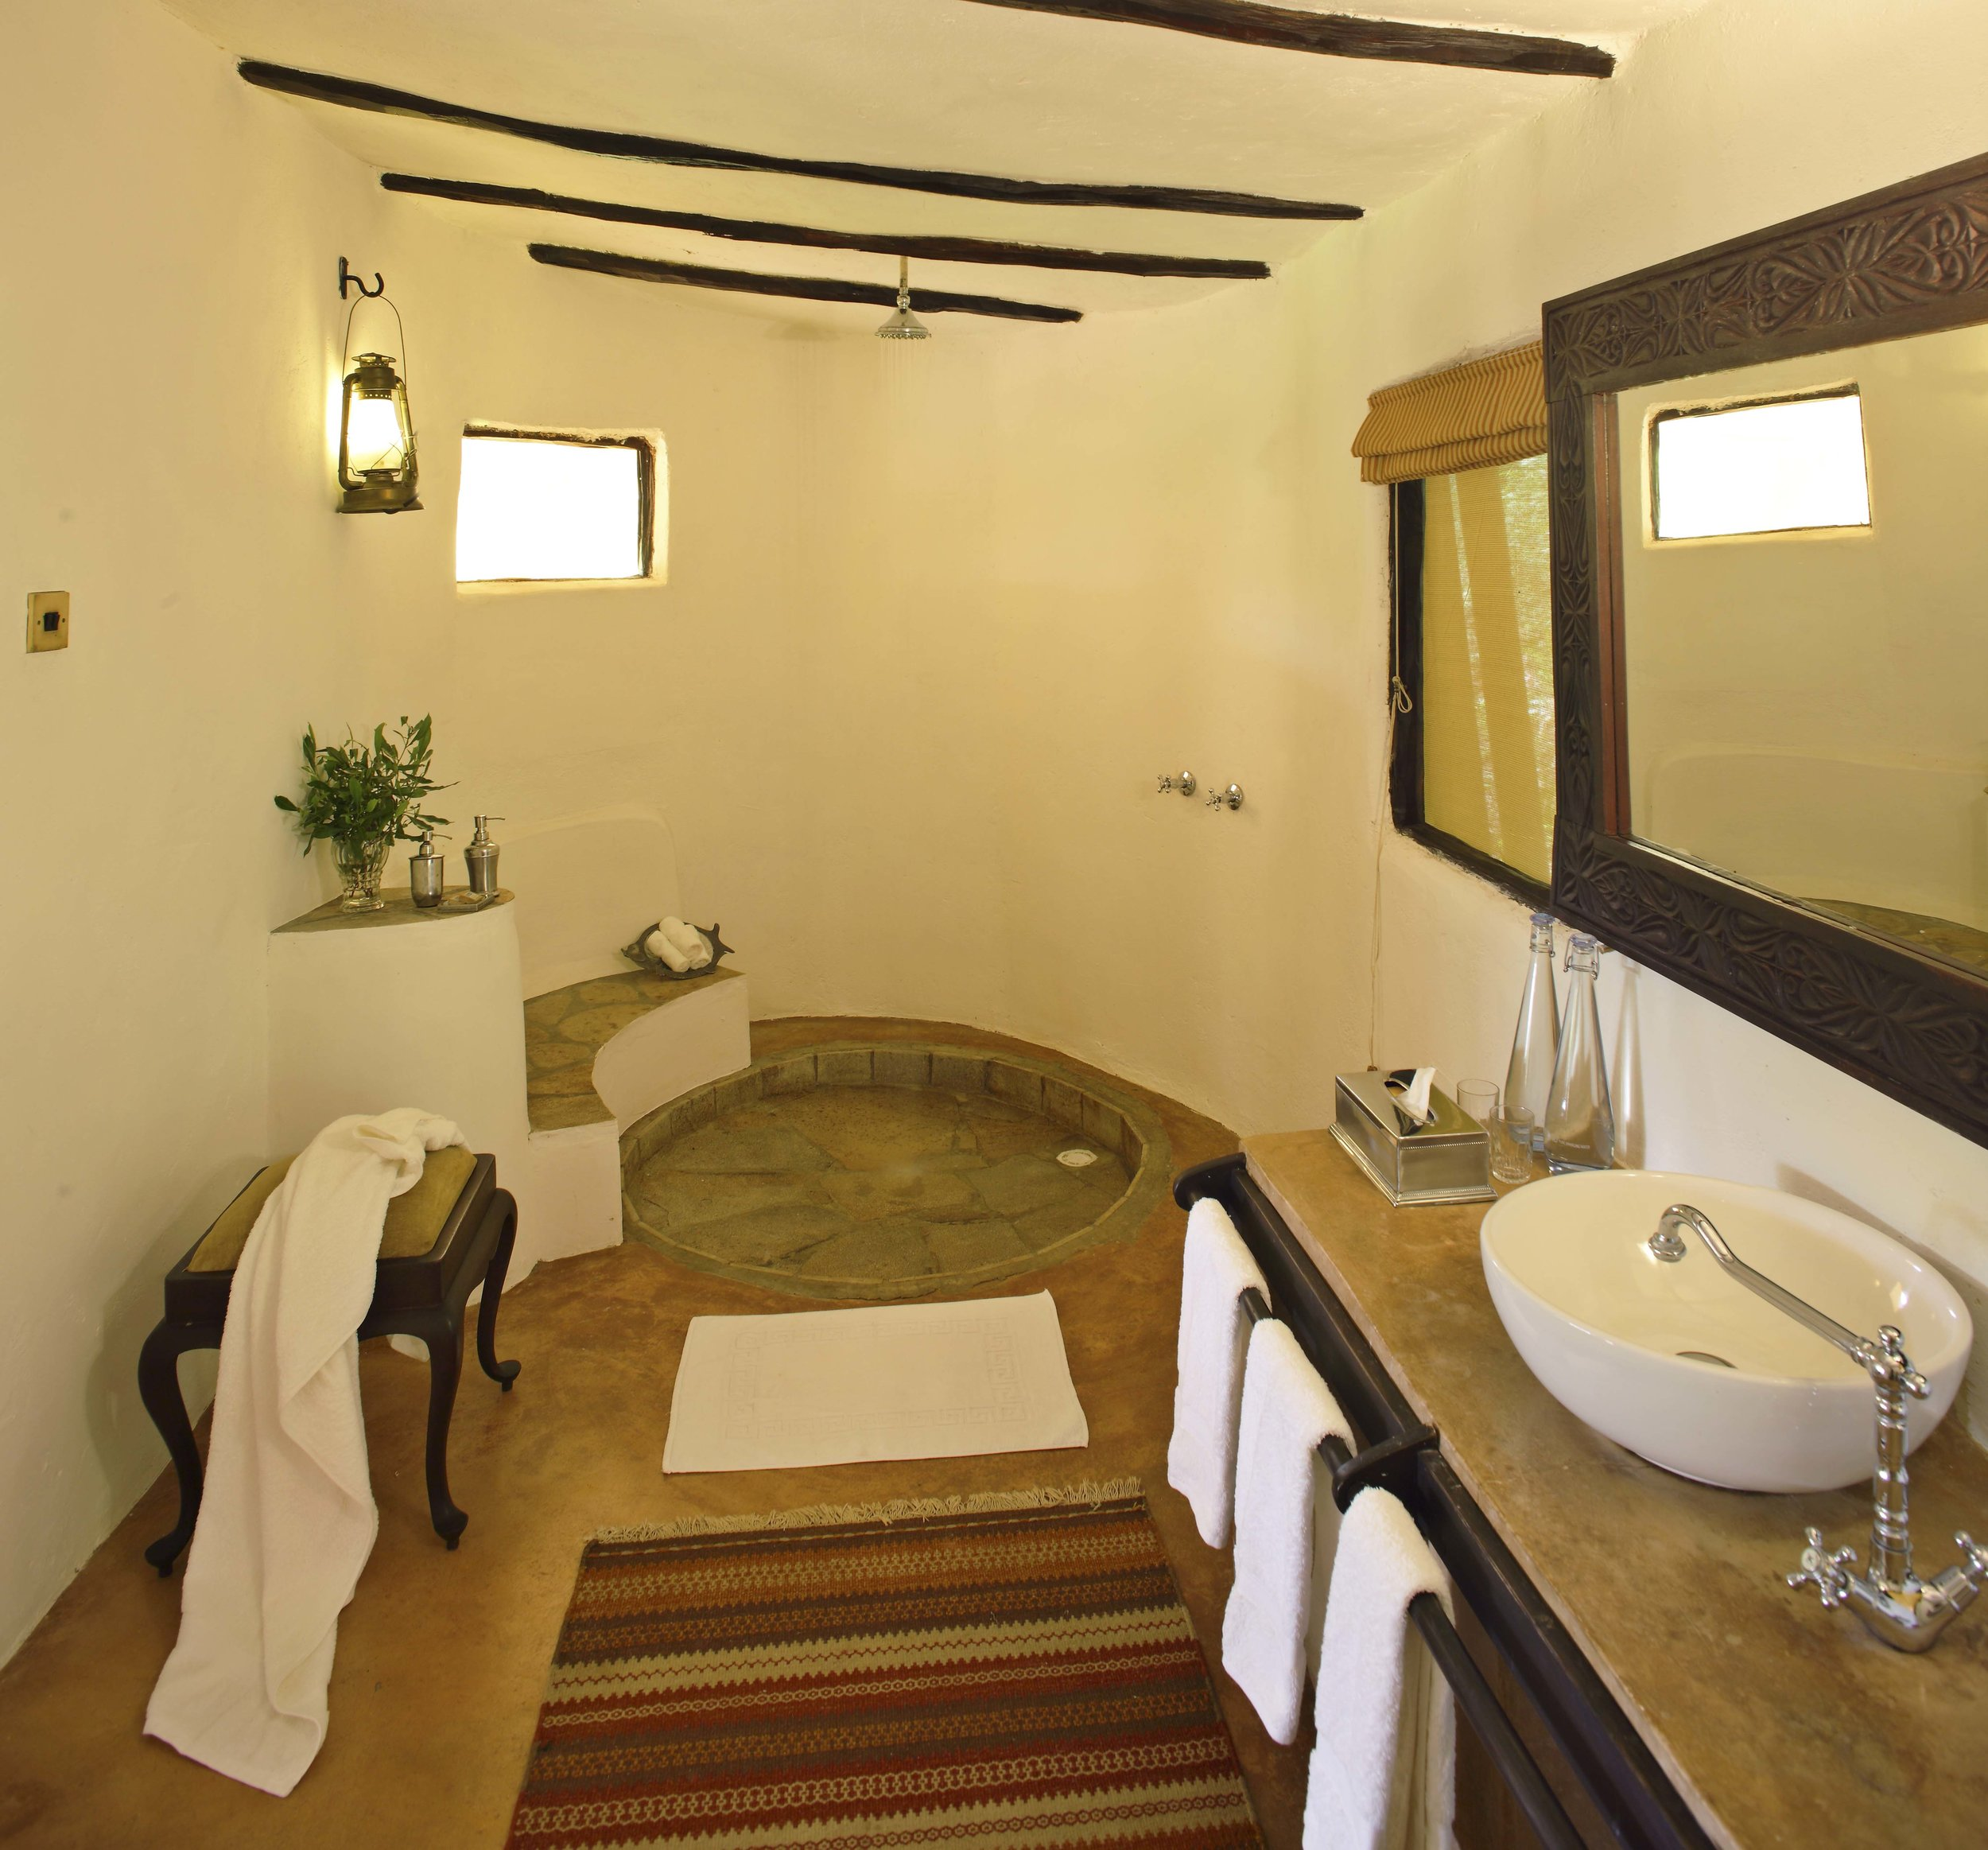 cottars_-_honeymoon_tent_bathroom.jpg